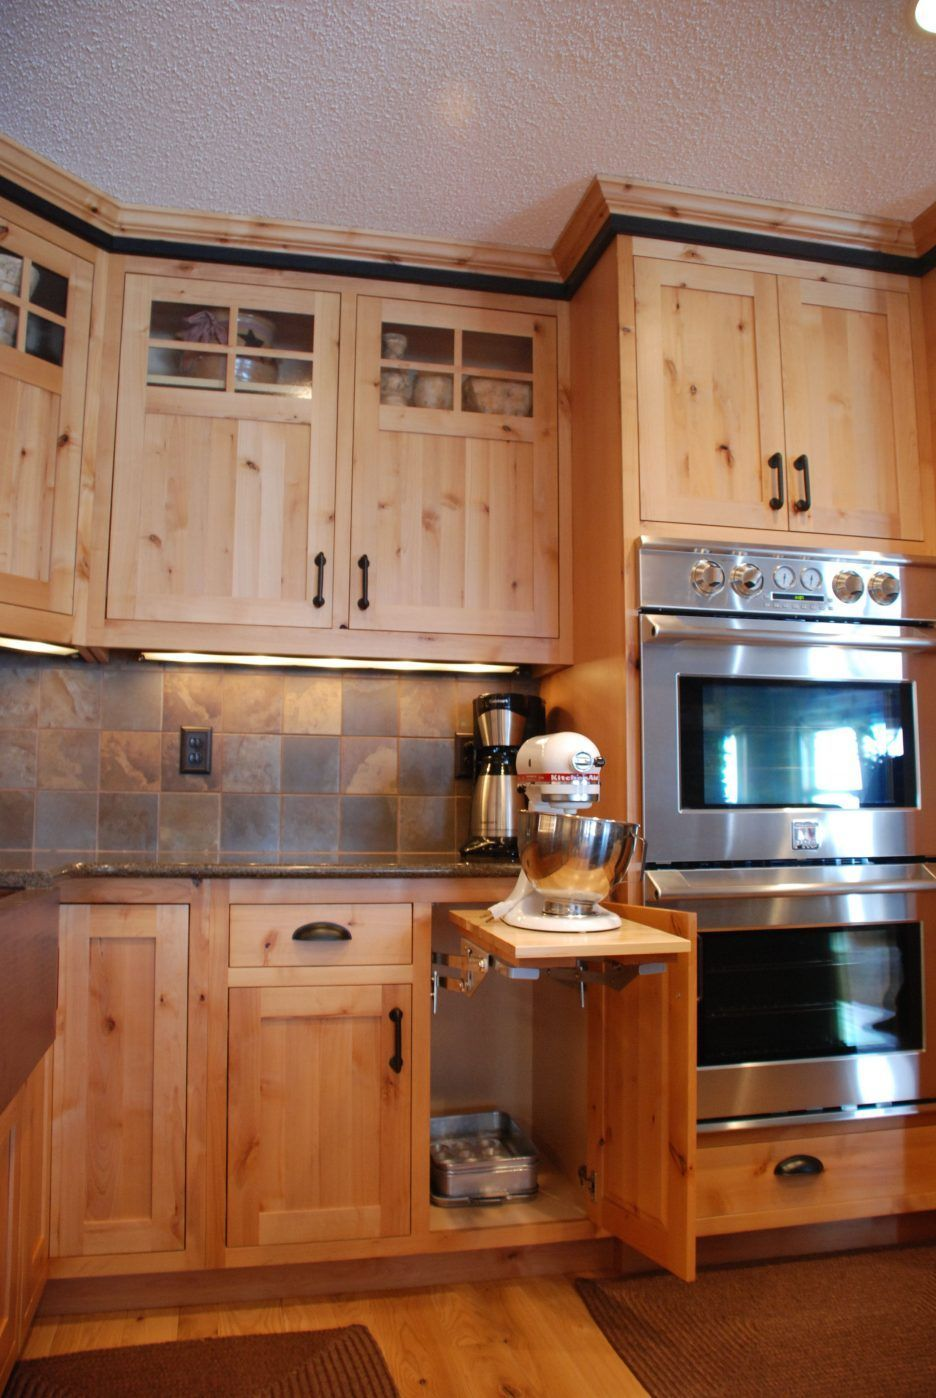 Kitchen Cabinet Rta Cabinets Reviews Legacy Cabinets Natural Wood Finish Kitch In 2020 Pine Kitchen Cabinets Hickory Kitchen Cabinets Farmhouse Style Kitchen Cabinets